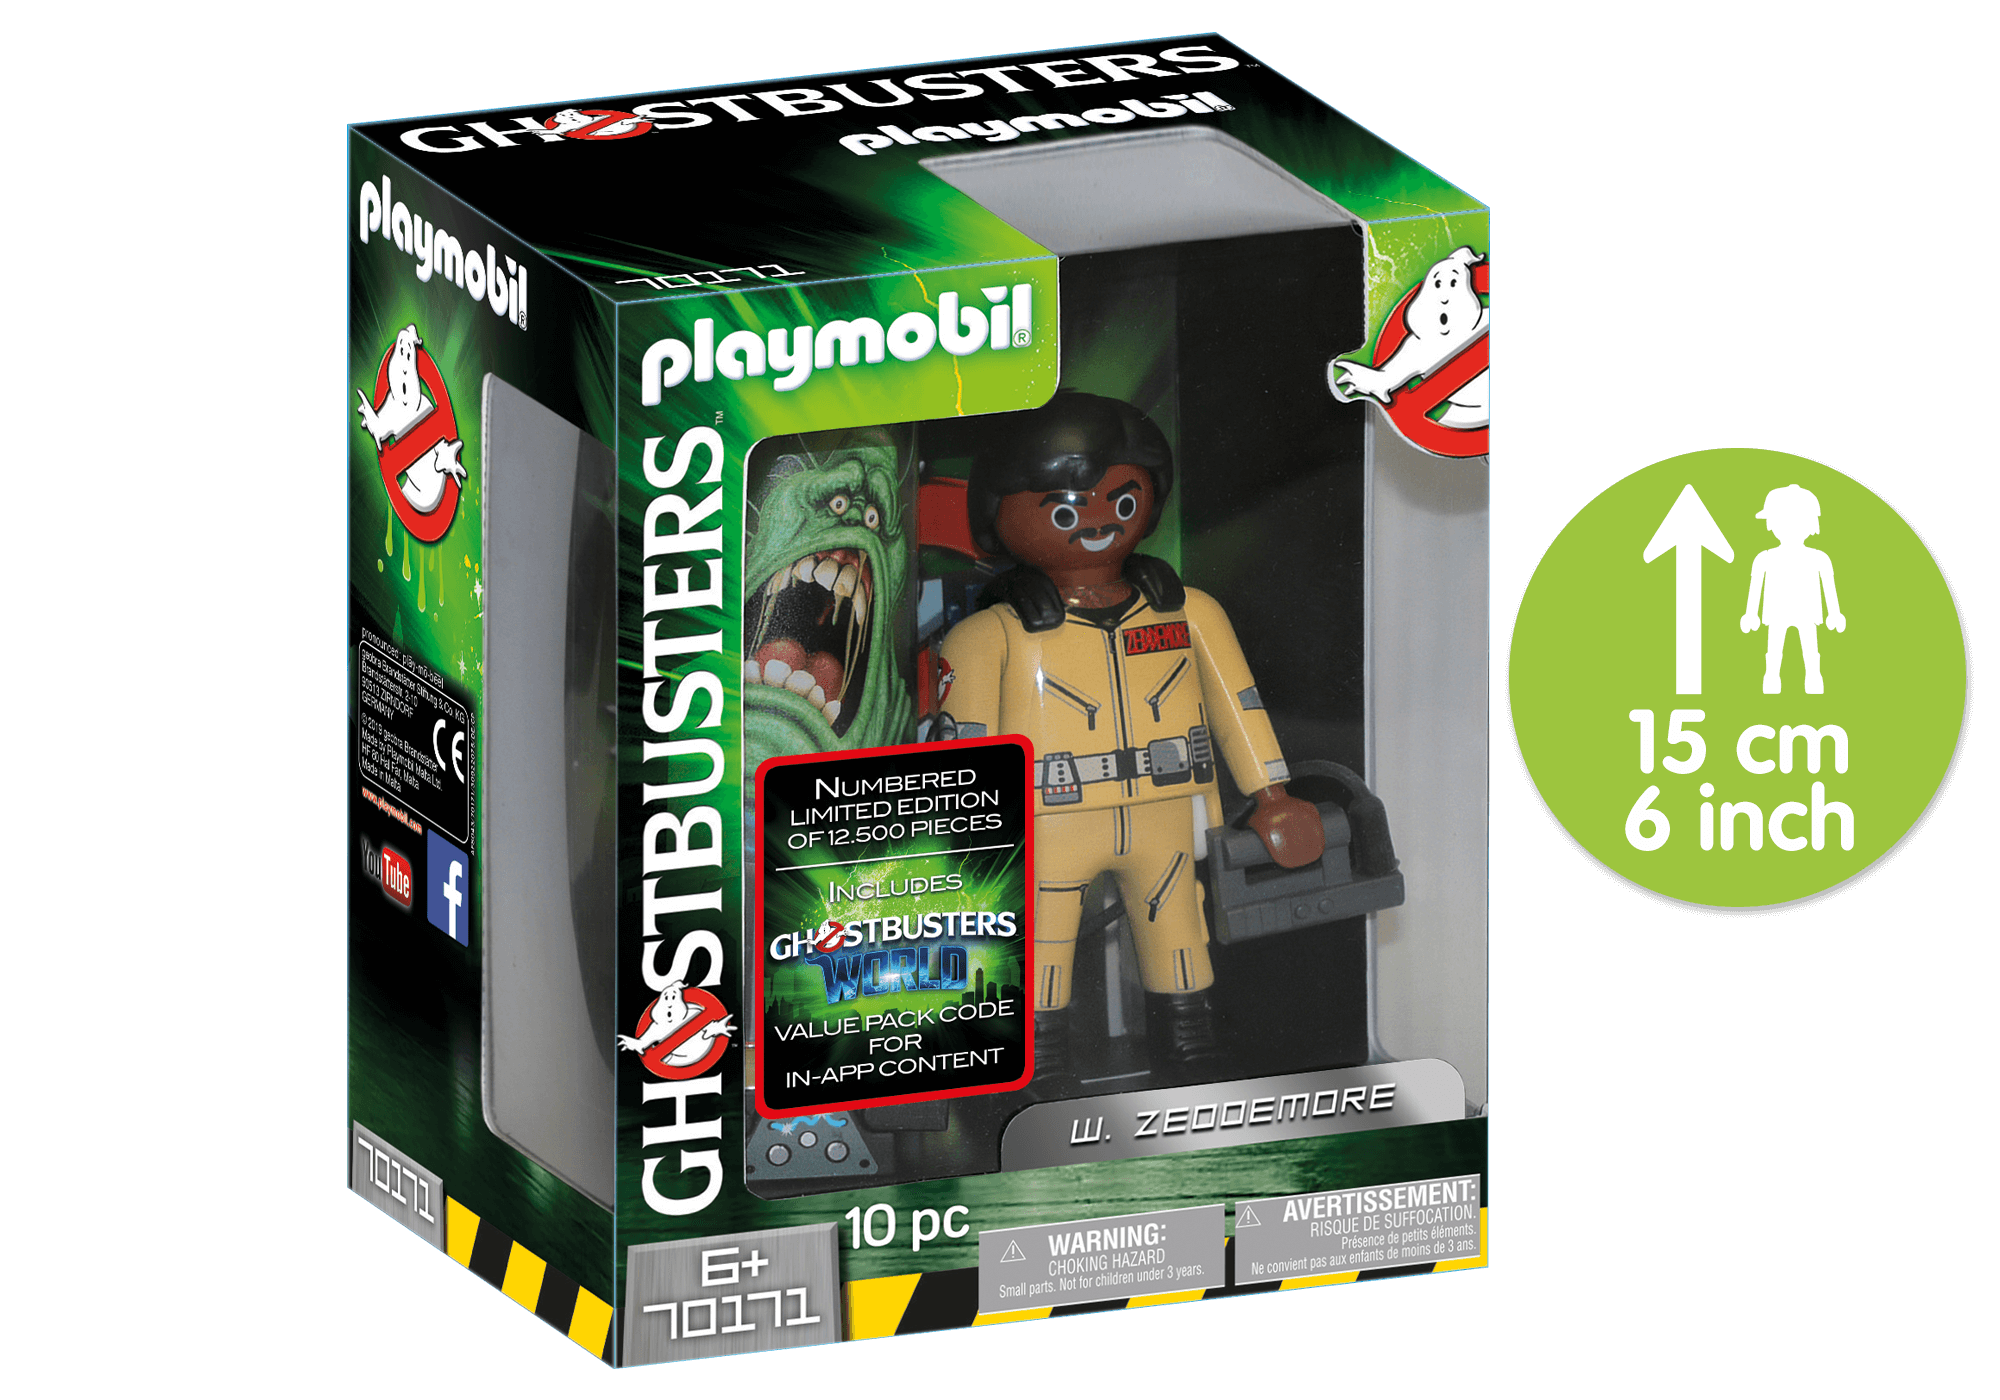 http://media.playmobil.com/i/playmobil/70171_product_detail/Ghostbusters™ Collection Figure W. Zeddemore